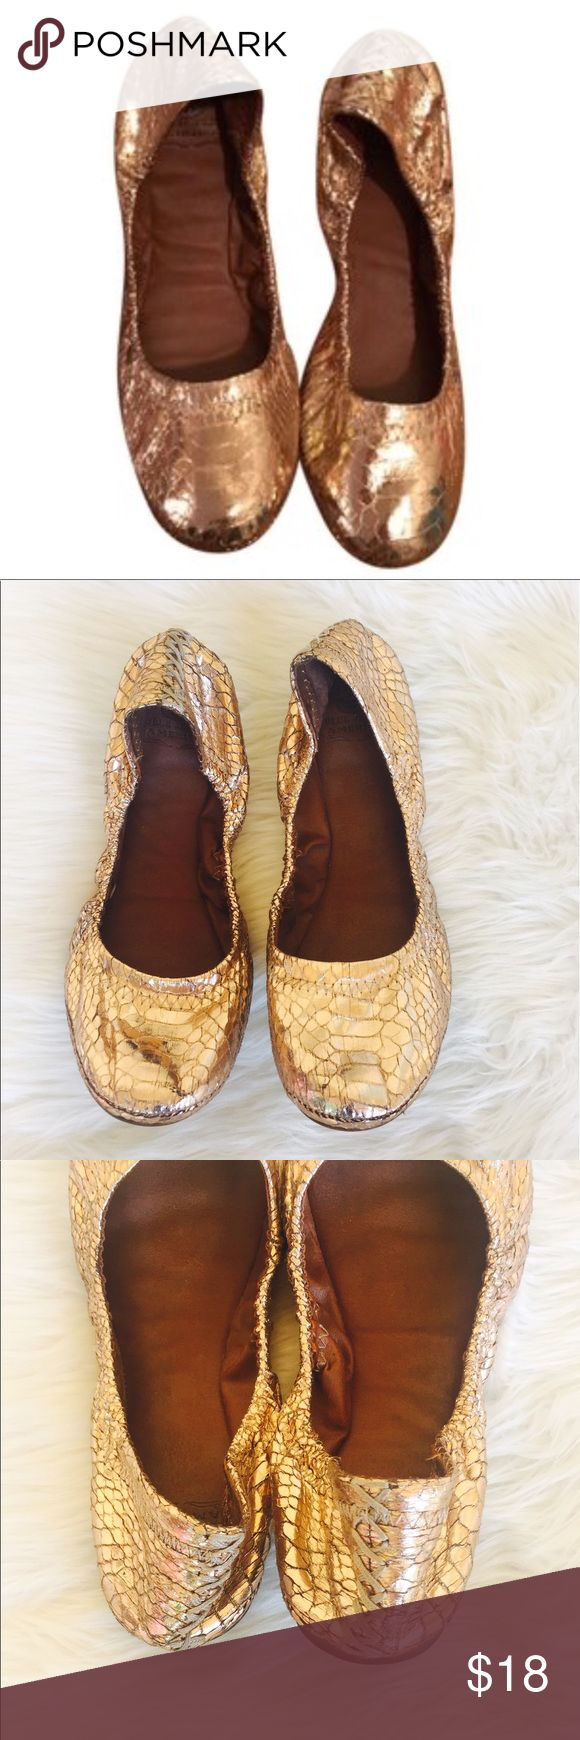 LUCKY Brand copper metallic flats Sz 7 M Type:Flats Size:7 Brand:Lucky Brand Color:Copper Style/Collection:Lucky Brand Copper Flats Condition: gently use shows minimal wear soles are good, no trades but I will gladly bundle Lucky Brand Shoes Flats & Loafers